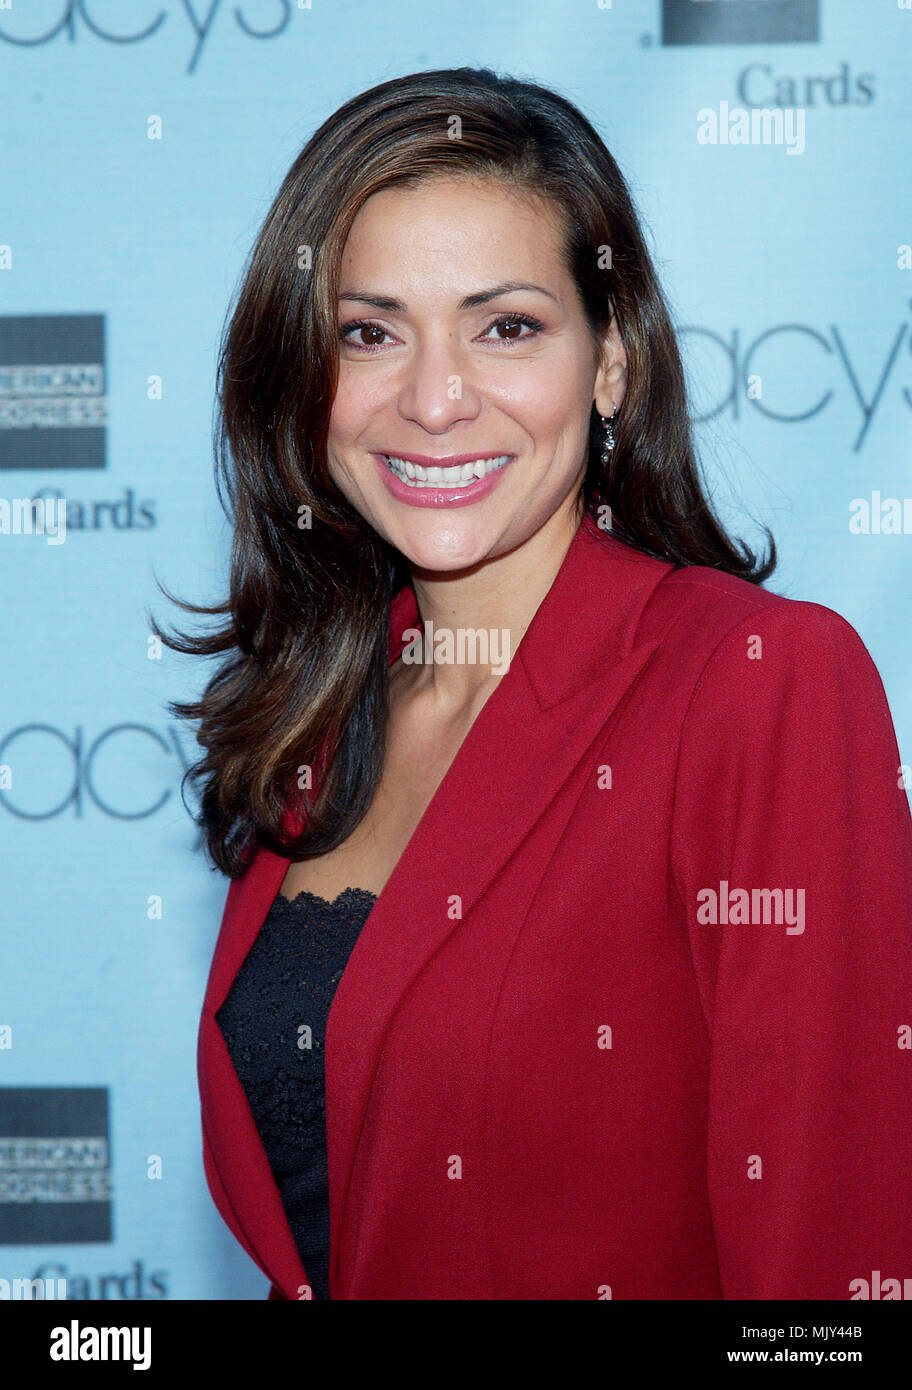 Constance Marie arriving at the 20th Macy's and American Express Anniversary Gala at the Barker Hangar in Santa Monica Los Angeles. September 28, 2002.           -            ConstanceMarie008A.jpgConstanceMarie008A  Event in Hollywood Life - California,  Red Carpet Event, Vertical, USA, Film Industry, Celebrities,  Photography, Bestof, Arts Culture and Entertainment, Topix Celebrities fashion /  from the Red Carpet-, one person, Vertical, Best of, Hollywood Life, Event in Hollywood Life - California,  Red Carpet and backstage, USA, Film Industry, Celebrities,  movie celebrities, TV celebritie - Stock Image